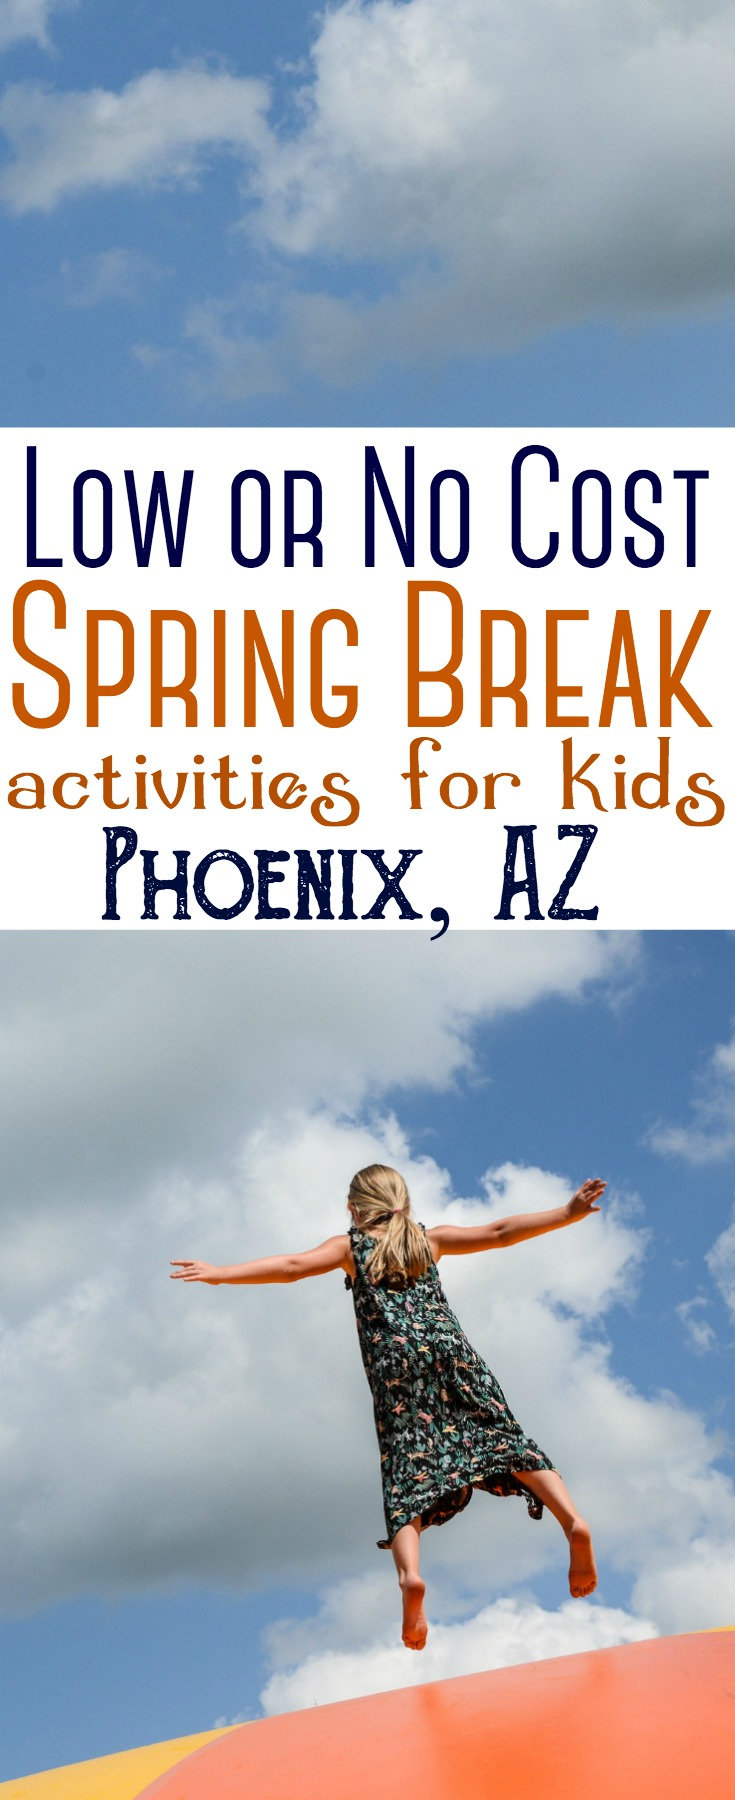 Kids on spring break? Here are a variety of fun and inexpensive things for them to do!    #Phoenix #Arizona #SpringBreak #Kids #Activities #AZ